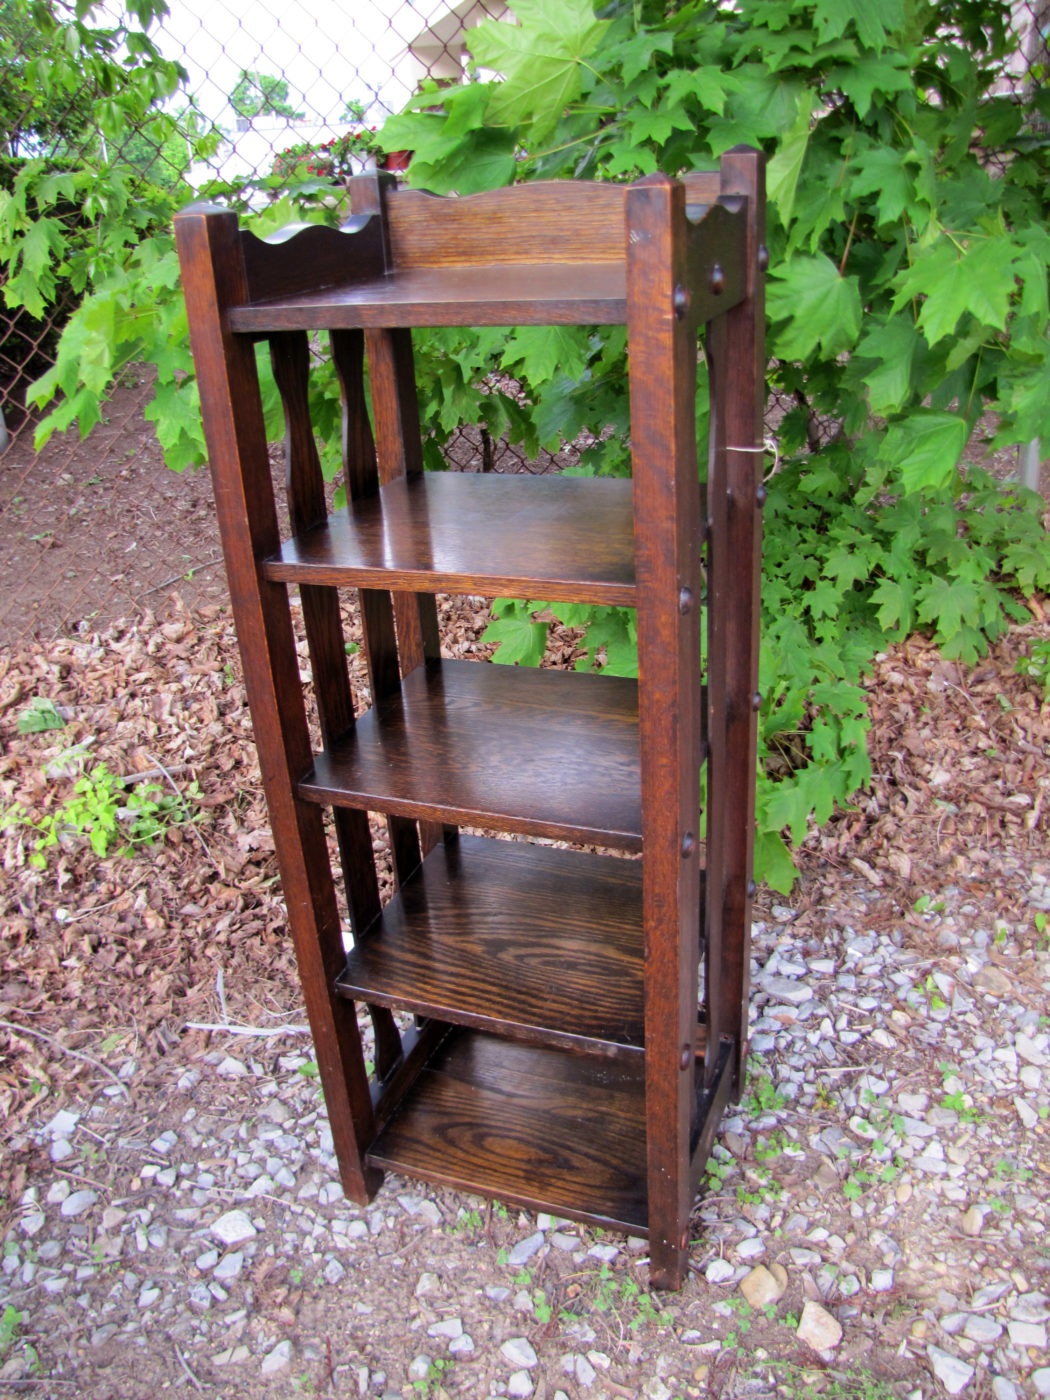 Home » Shop » Antique Furniture » Stands » Antique Michigan Chair Company  Magazine Stand Stickley Era w4259 - Antique Michigan Chair Company Magazine Stand Stickley Era W4259